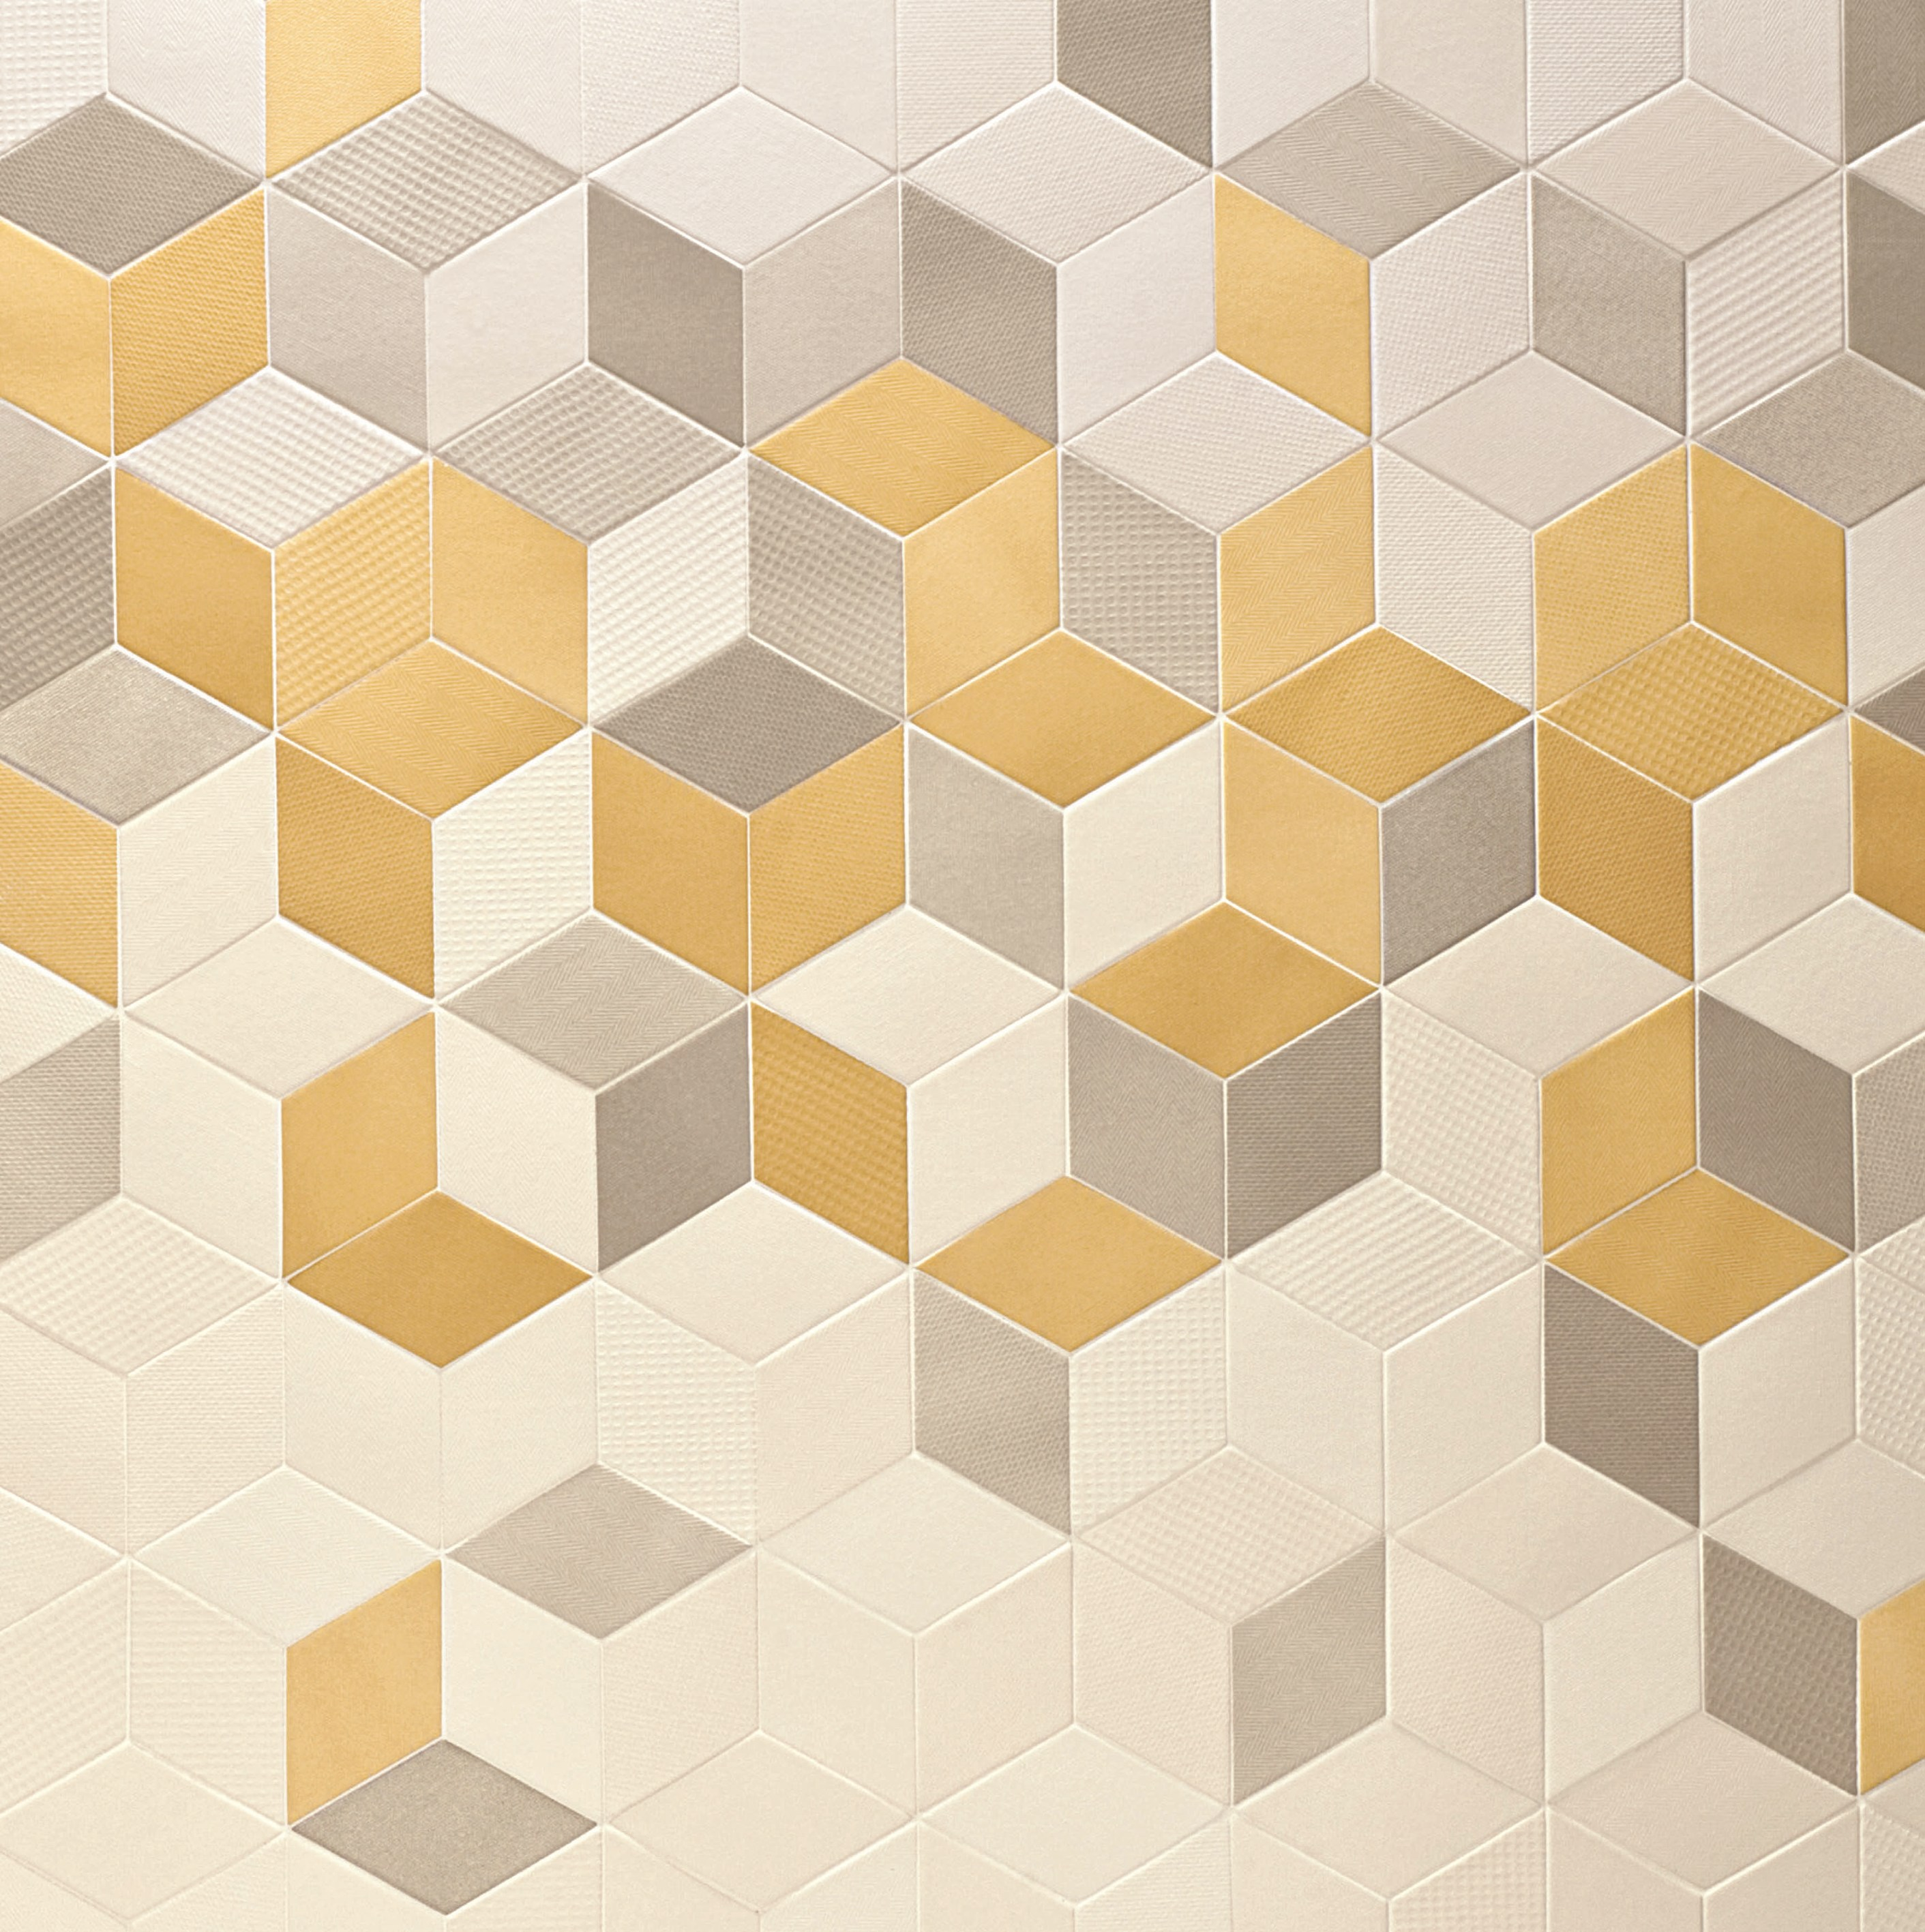 Tex Indoor Porcelain Stoneware Wall Floor Tiles Tex Yellow Mutina on hexagon floor tile